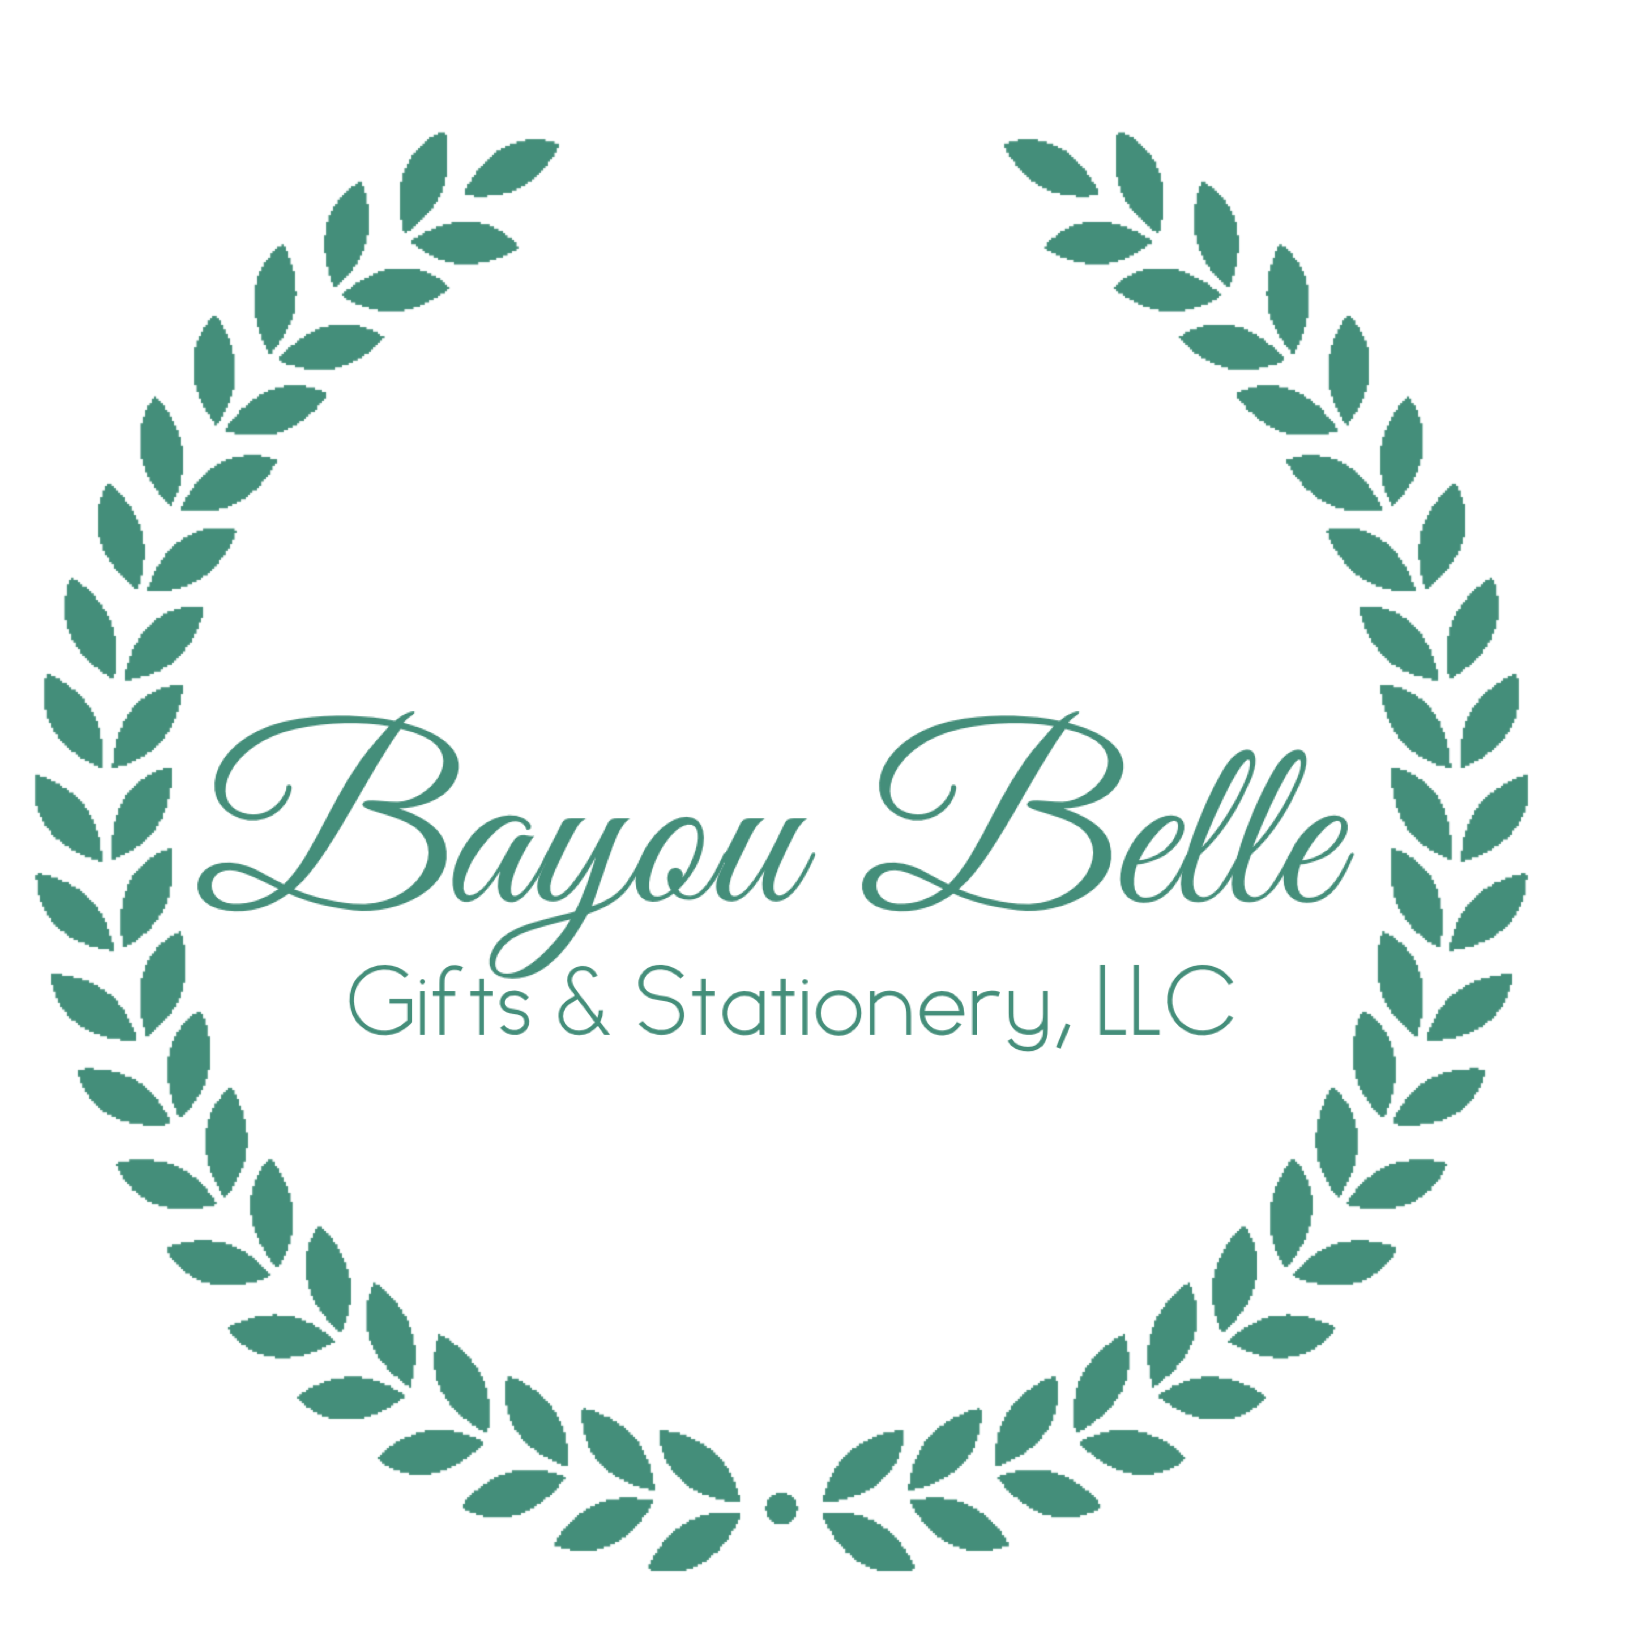 Bayou Belle Gifts & Stationery